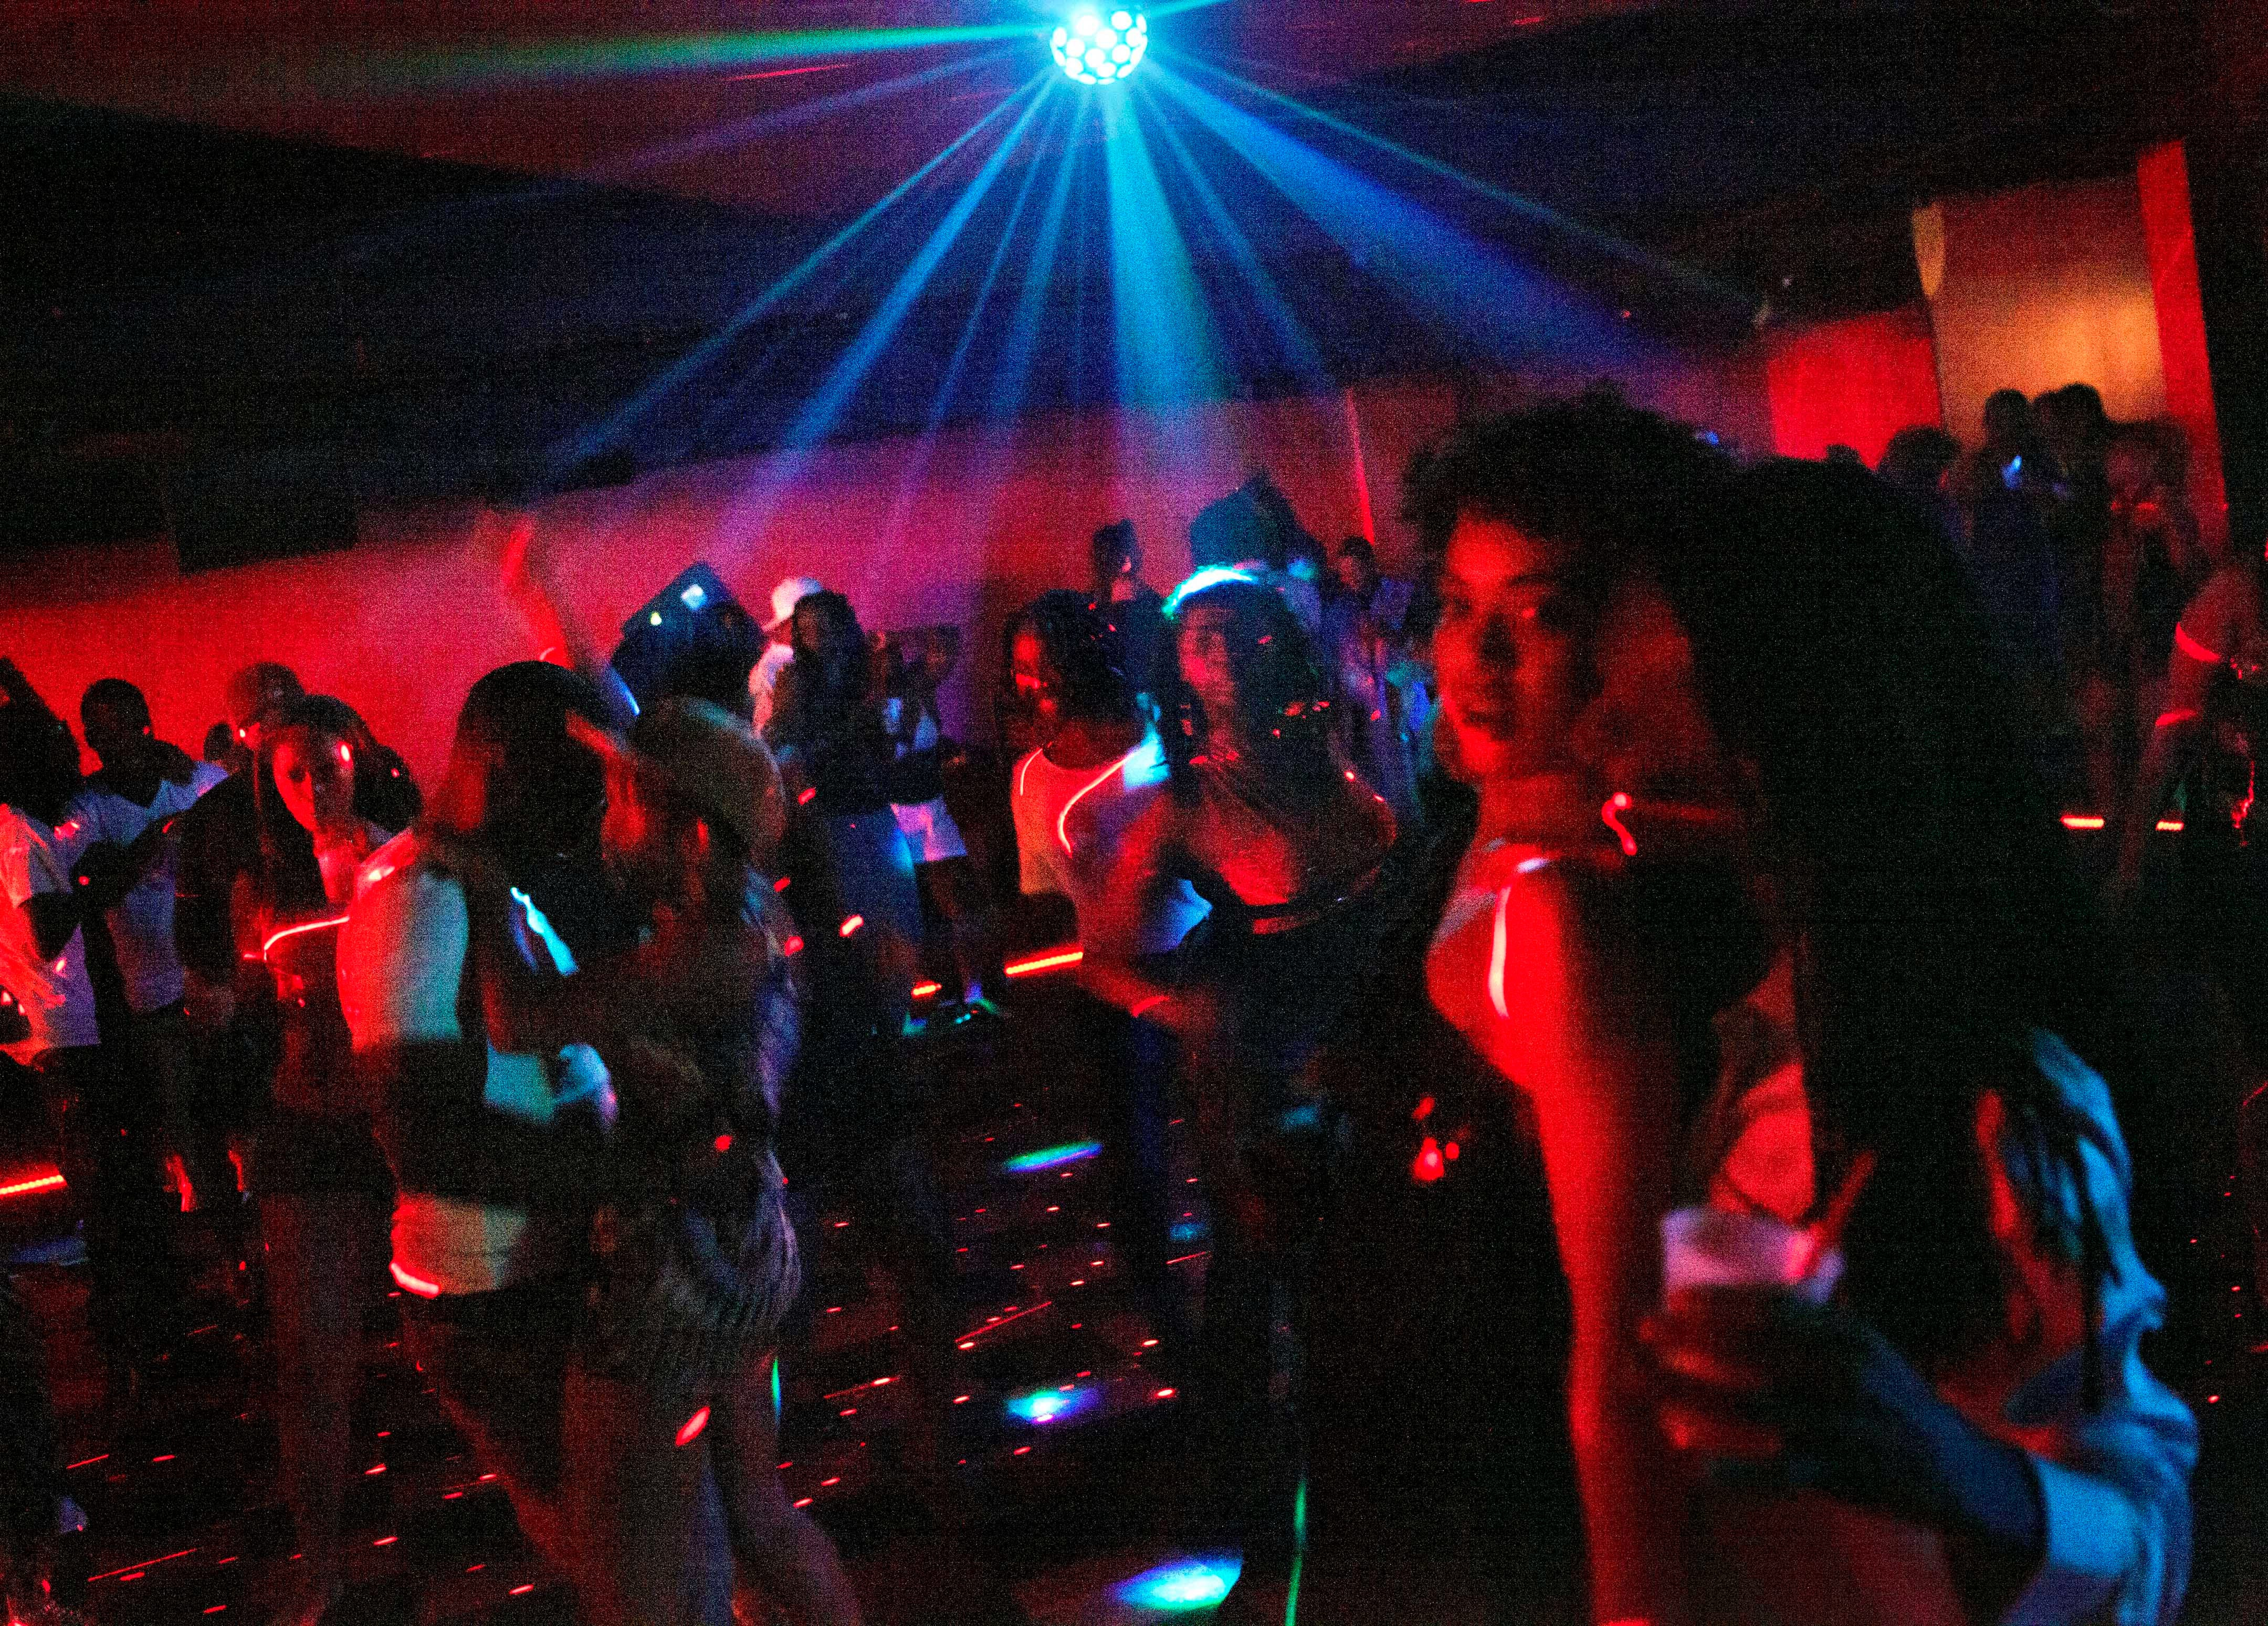 Lauren Karthyn, right, dances at the Royal Peacock Club on Auburn Avenue, once patronized by celebrities such as Joe Louis and Jackie Robinson and where entertainers Ray Charles, Aretha Franklin and James Brown all performed, Saturday, June 9, 2012, in Atlanta.